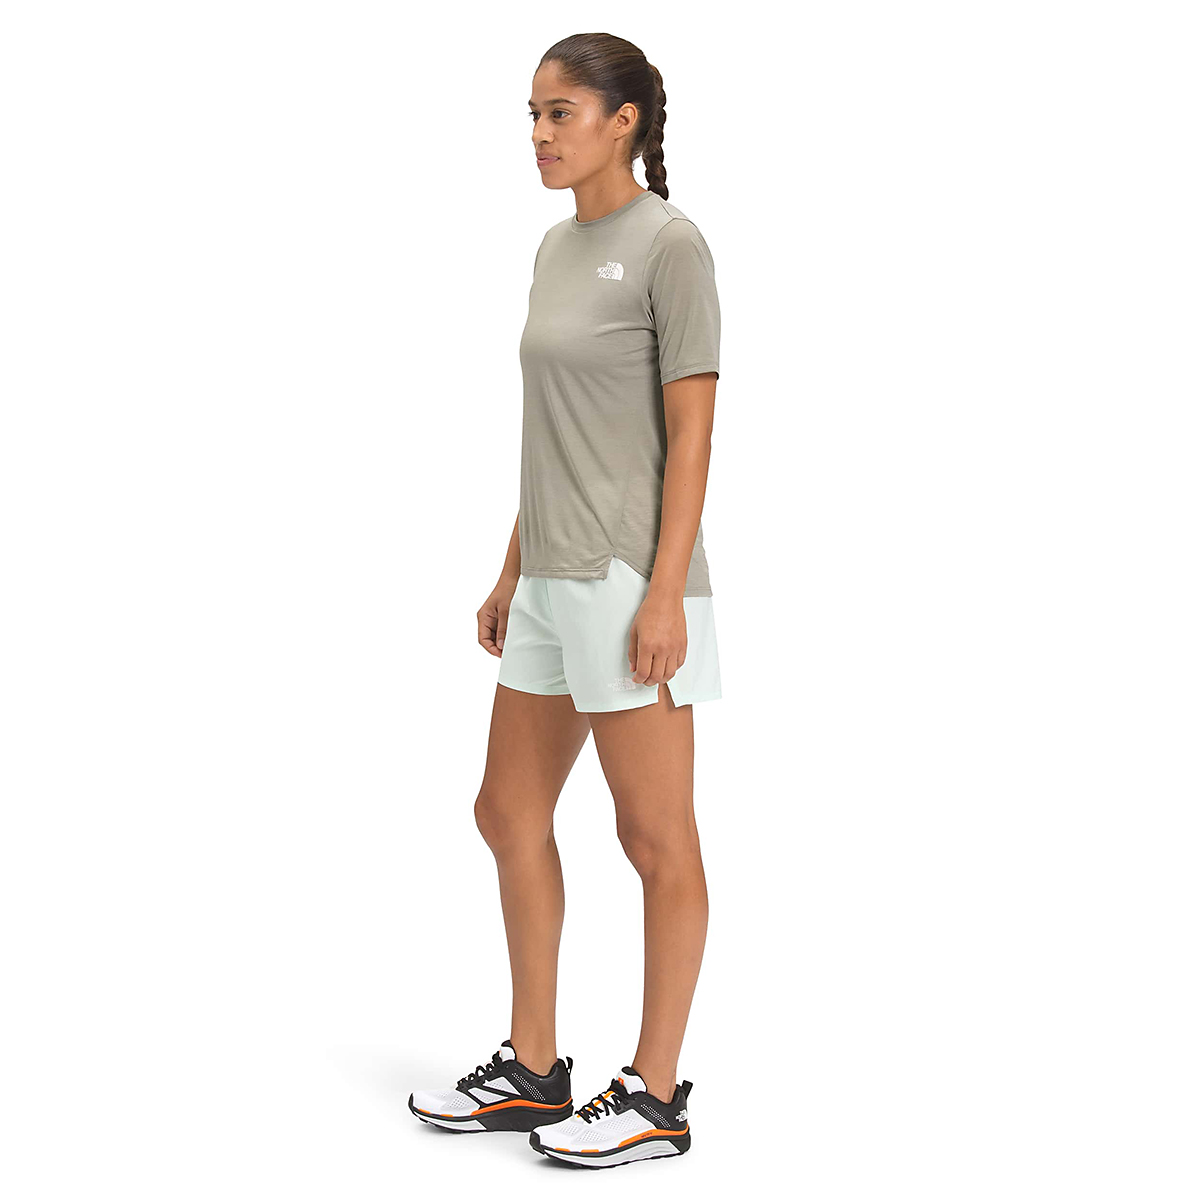 Women's The North Face Up With The Sun Short Sleeve Shirt - Color: Mineral Grey - Size: XS, Mineral Grey, large, image 2